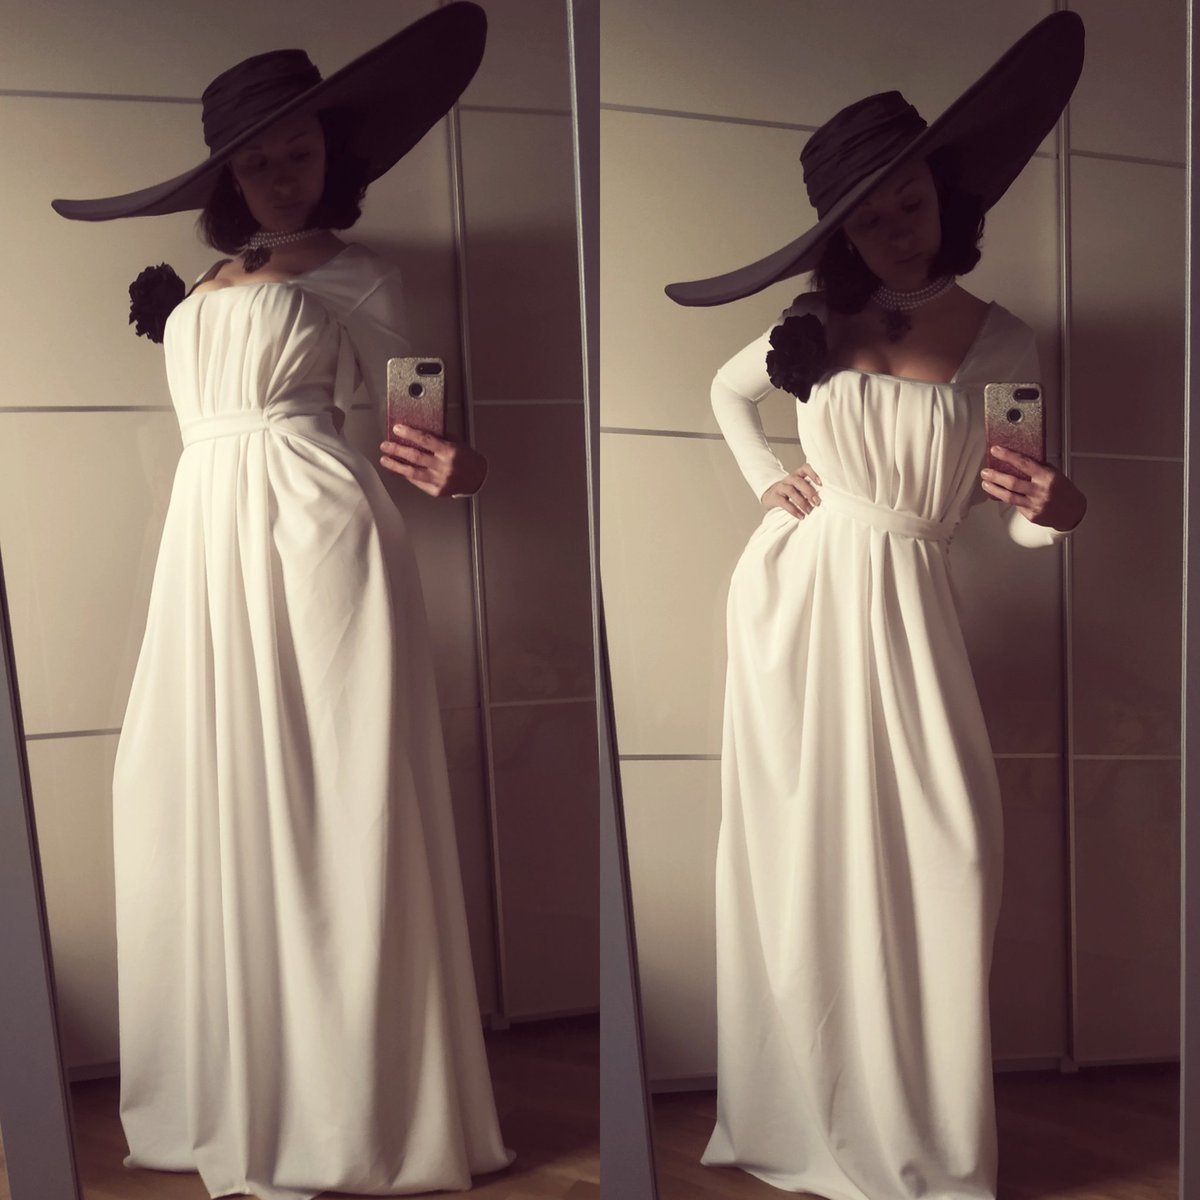 Lady Dimitrescu is almost done! It's exteremely windy today, and can't weather the dress because I'm afraid it will fly out of my 11 floor balcony 😅 2 days till game premiere! @CenegaPolska @RE_Games @CapcomEurope #LadyDimitrescu #ResidentEvilVillage #ResidentEvil8 #cosplay https://t.co/jtN7LB4yaJ